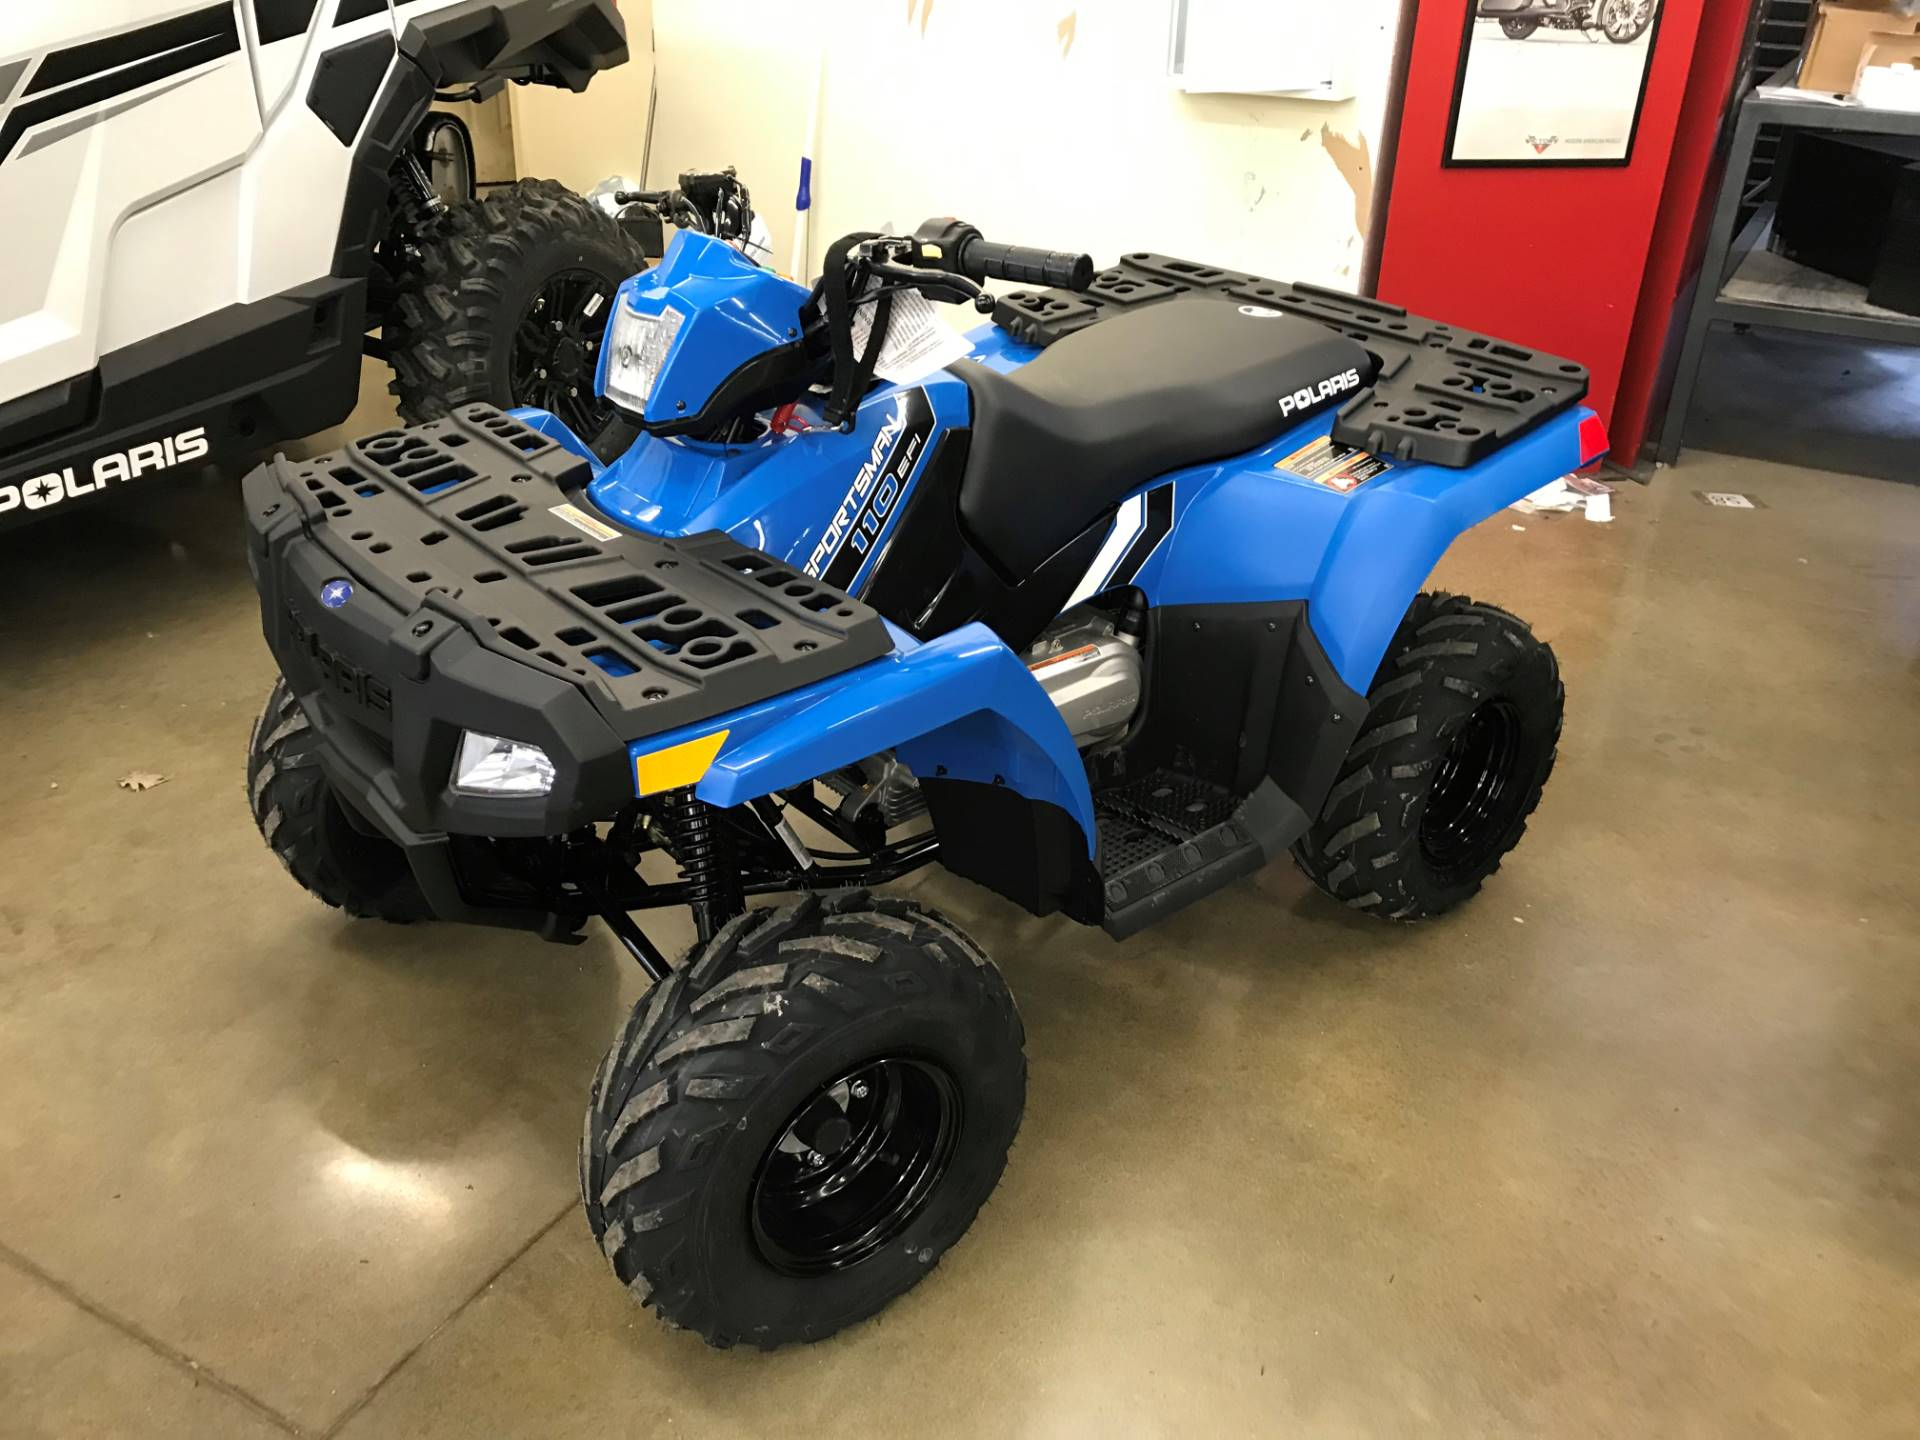 2020 Polaris Sportsman 110 EFI in Chicora, Pennsylvania - Photo 1